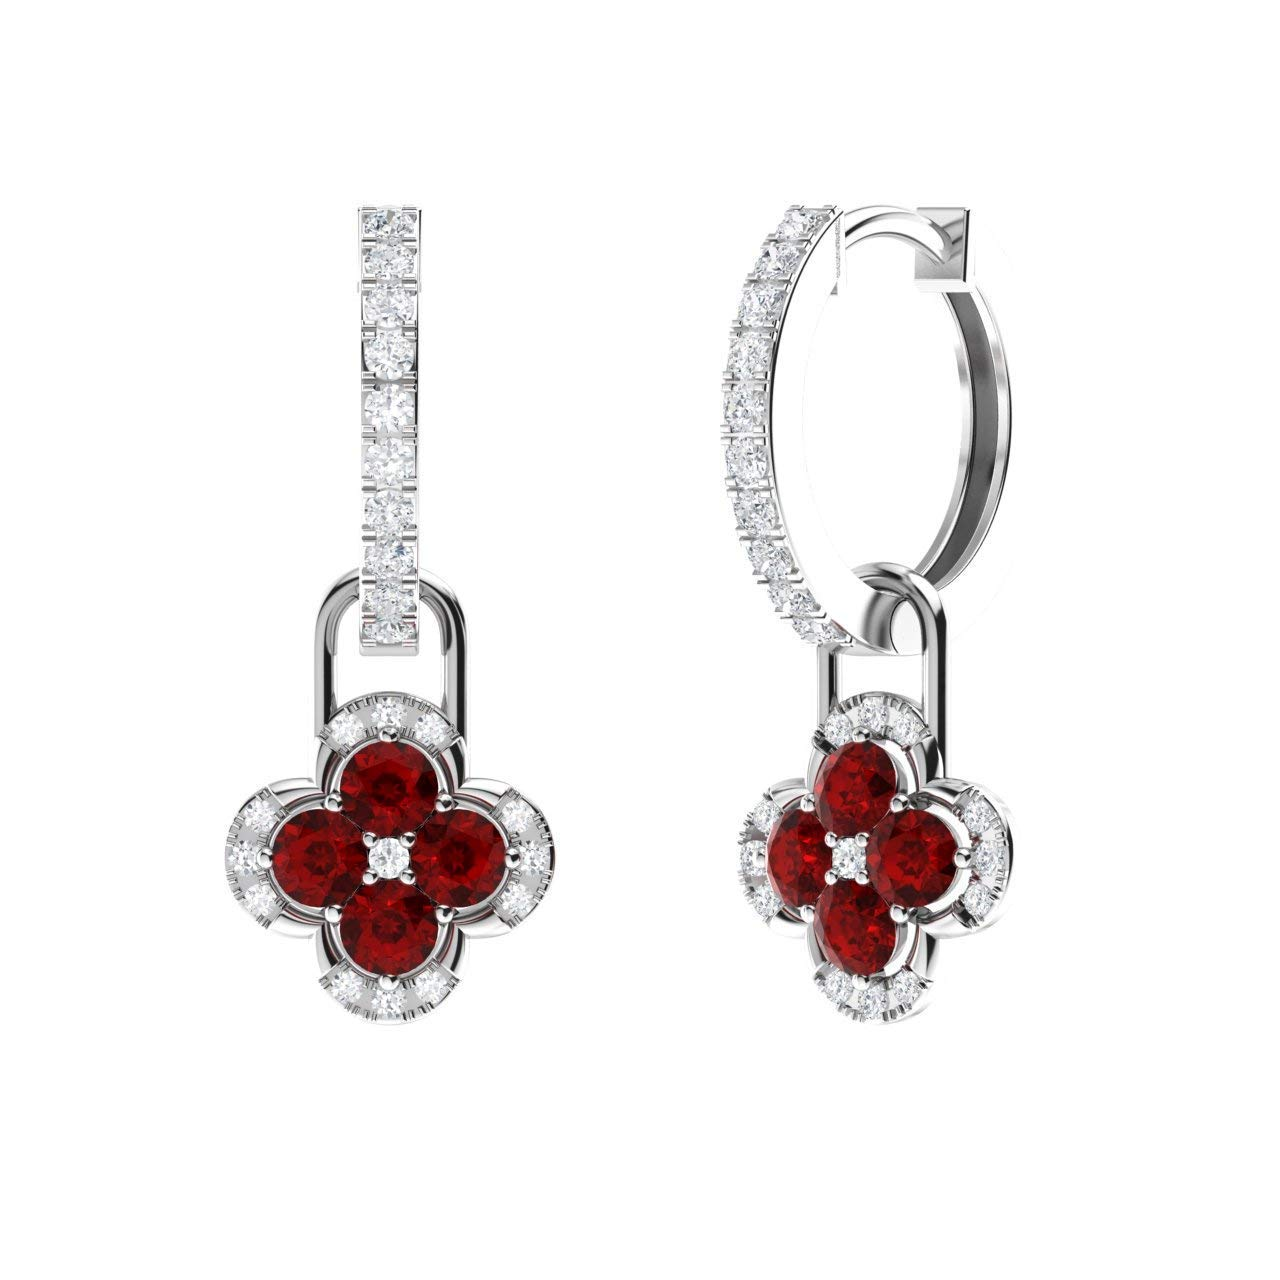 Diamondere Natural and Certified Diamond Huggie Earrings with a Dangling Gemstone Flower in 14K White Gold | 1.14 Carat Petite Earrings for Women